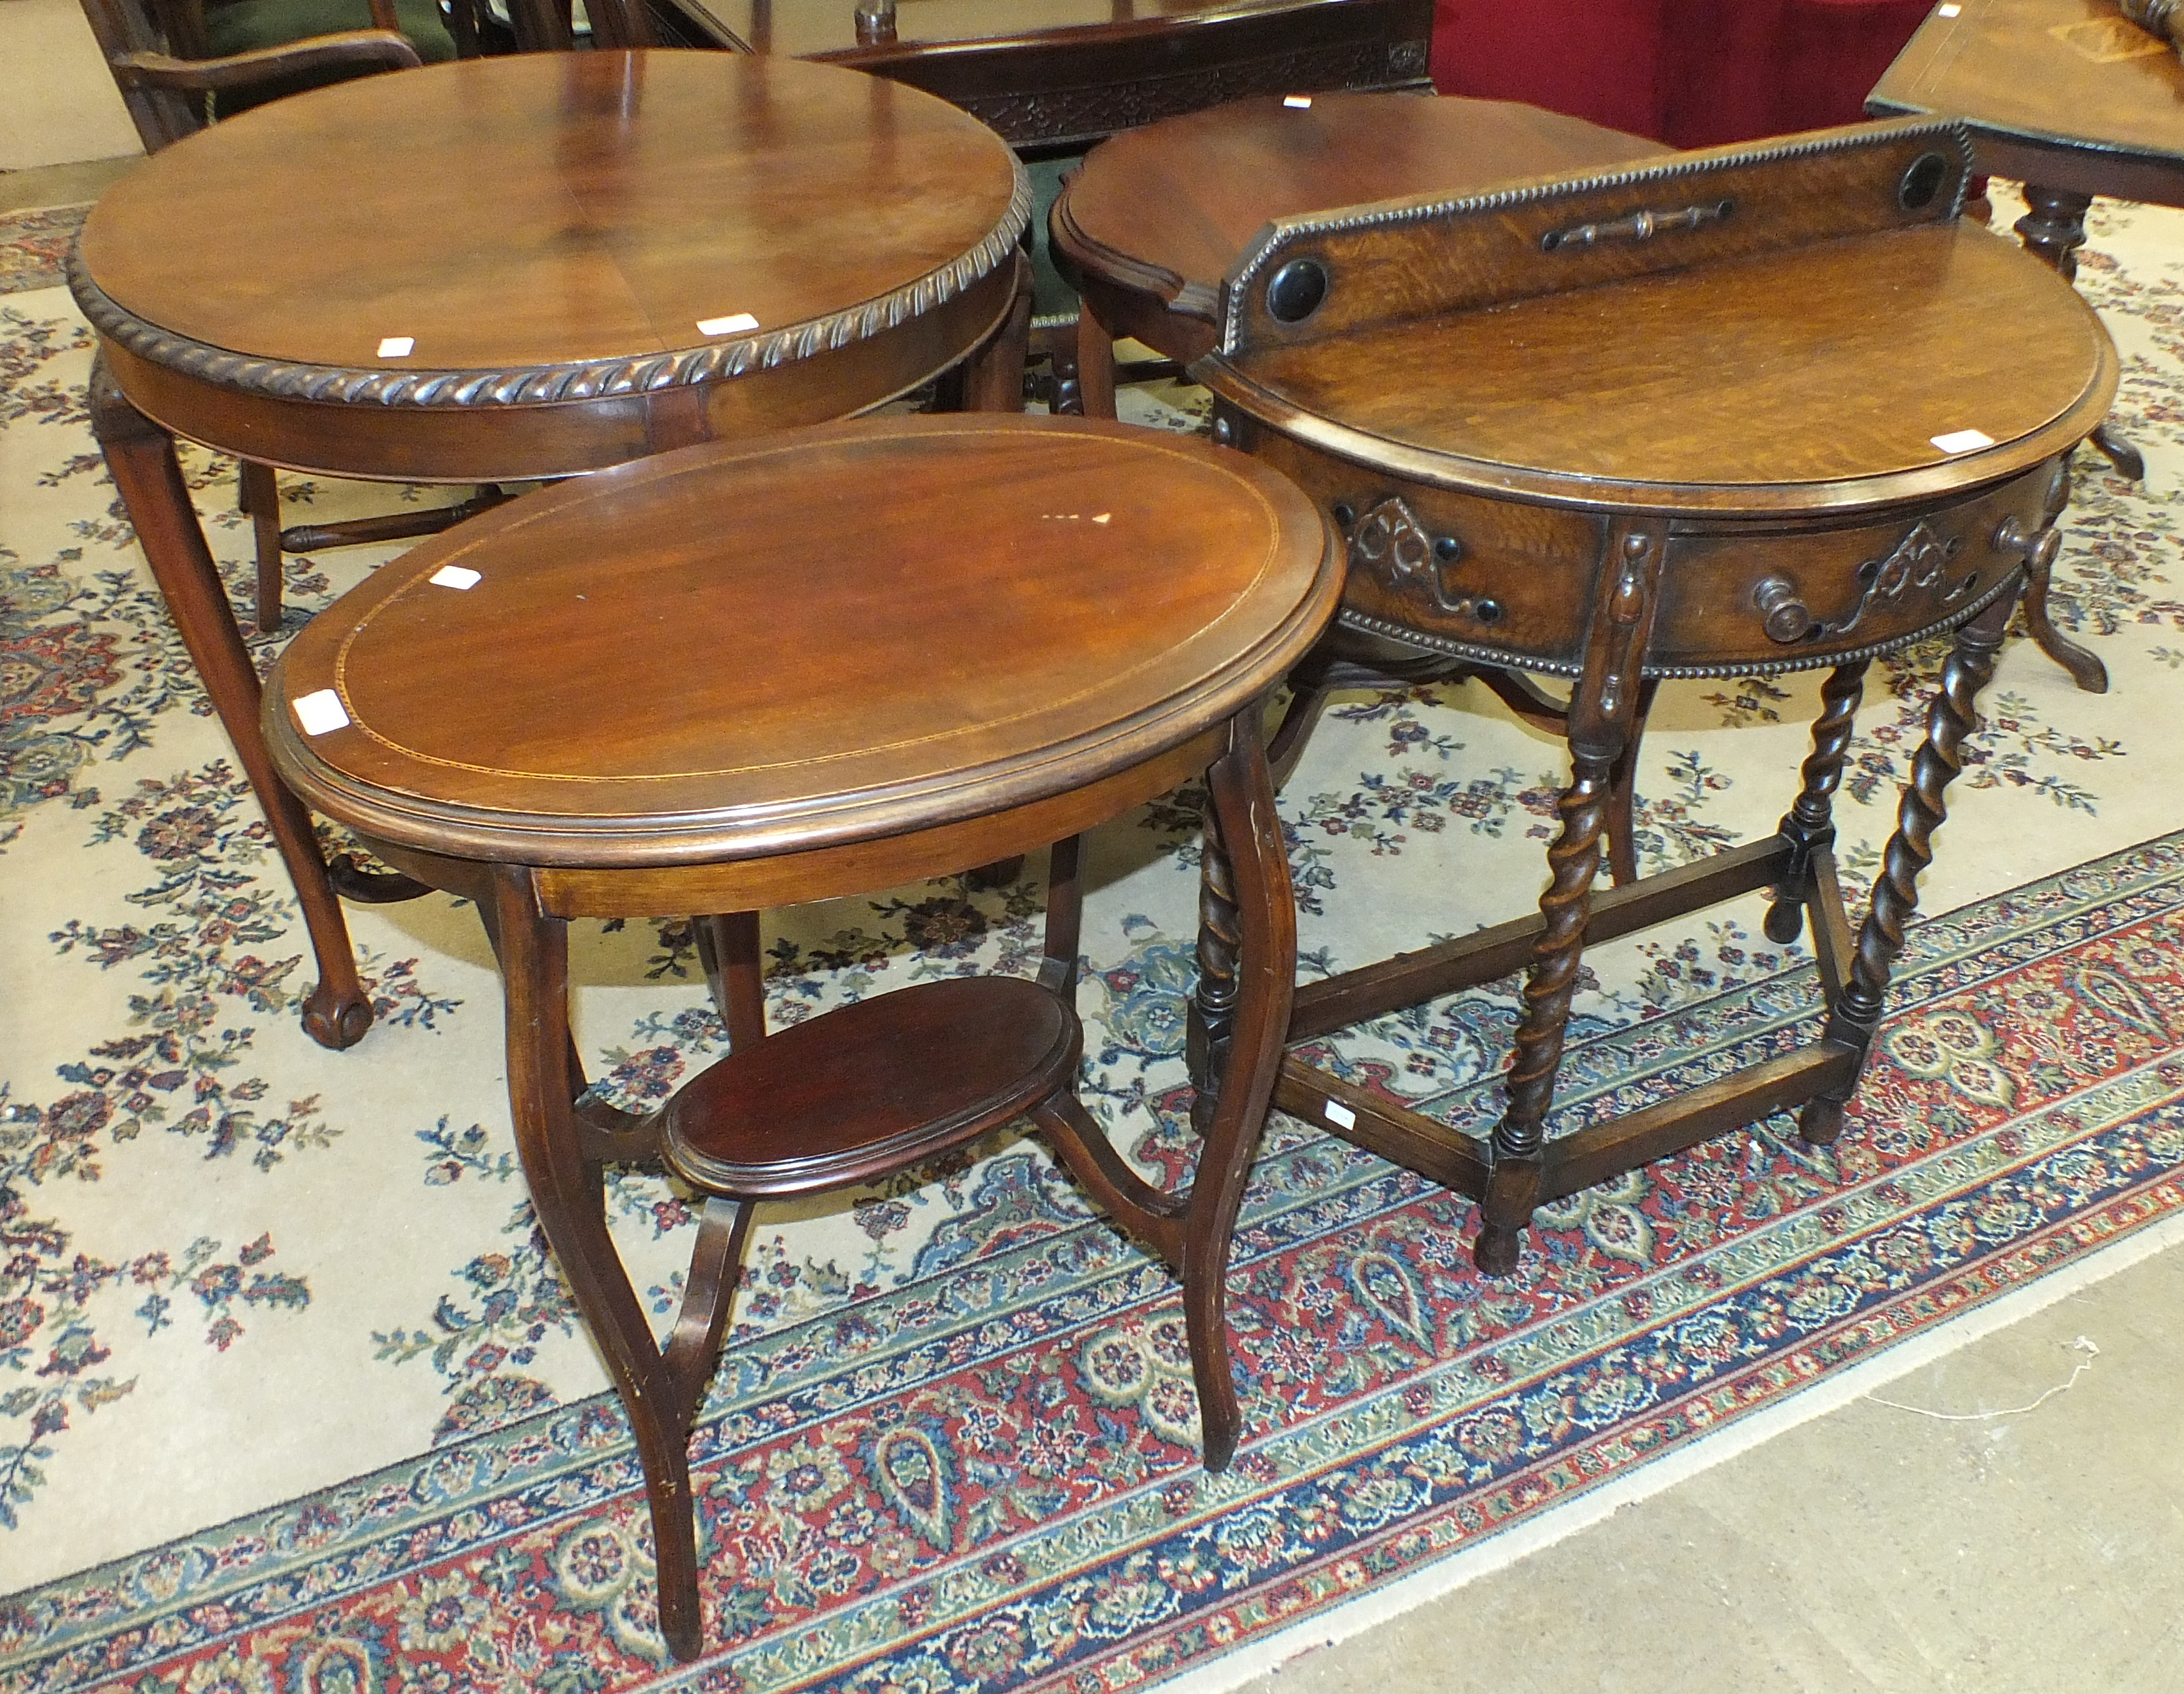 Lot 35 - An Edwardian mahogany circular-top occasional table on slightly-curved turned legs united by an X-